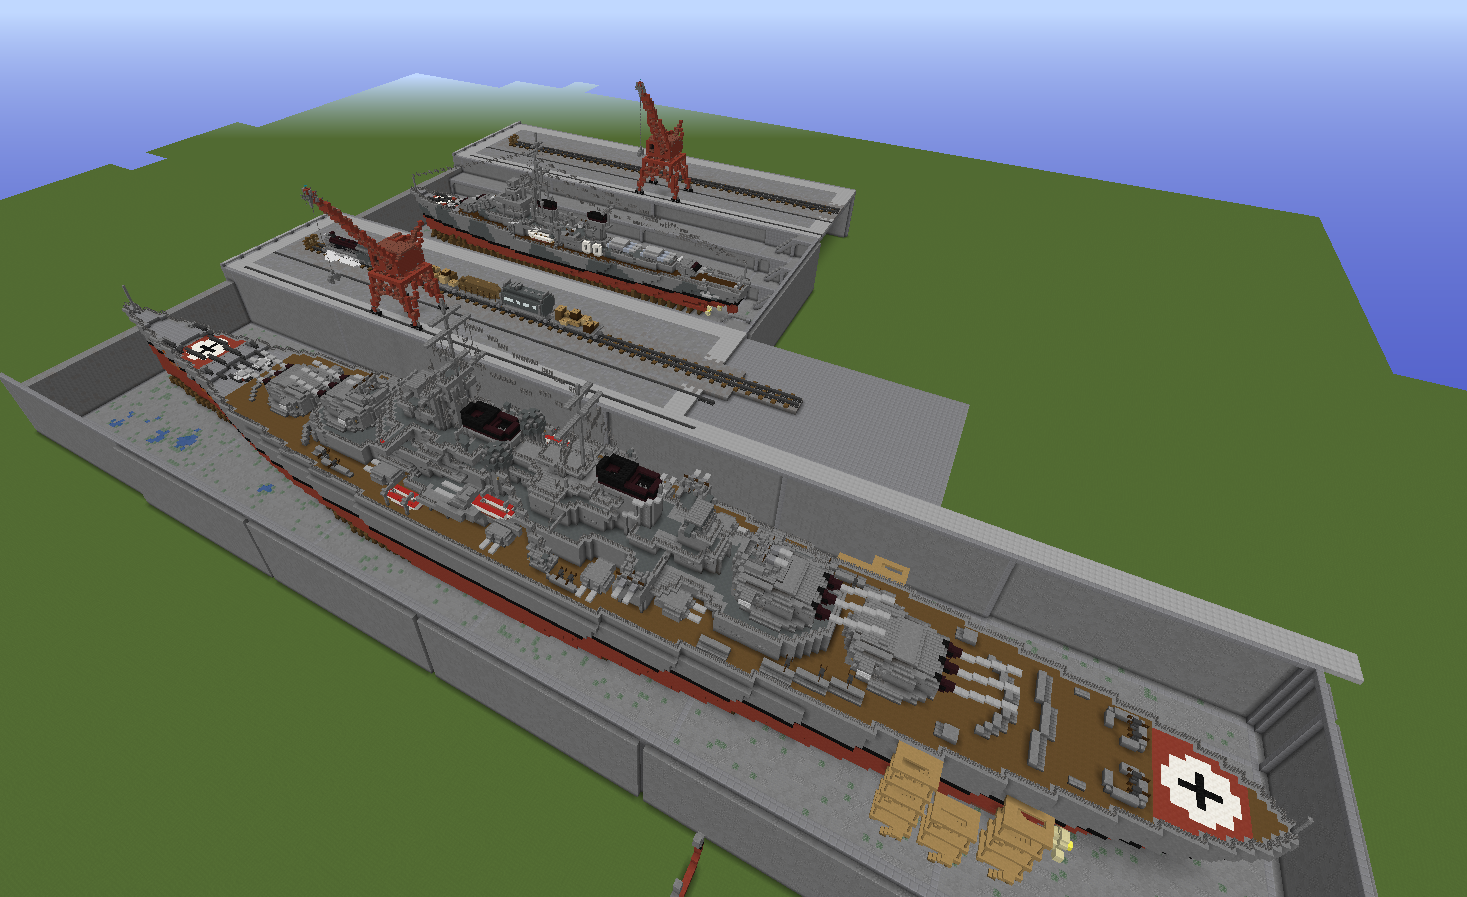 upload_2018-7-14_13-7-48.png